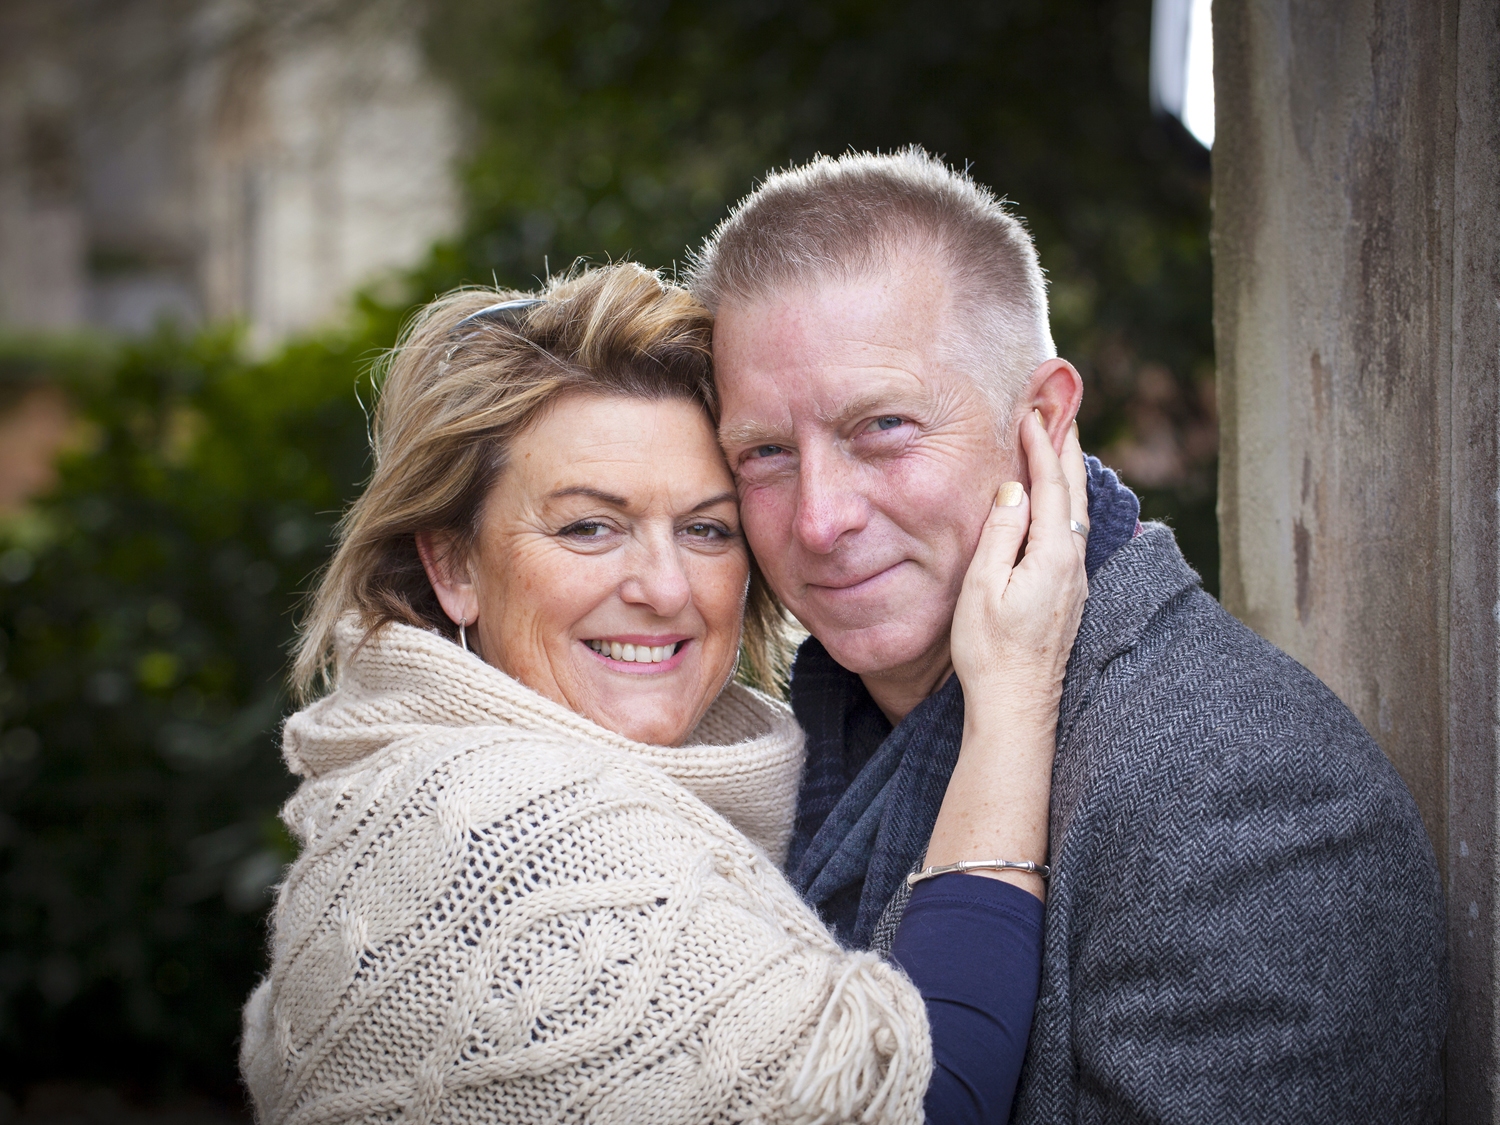 out door portraits family photographer bournemouth dorset.jpg